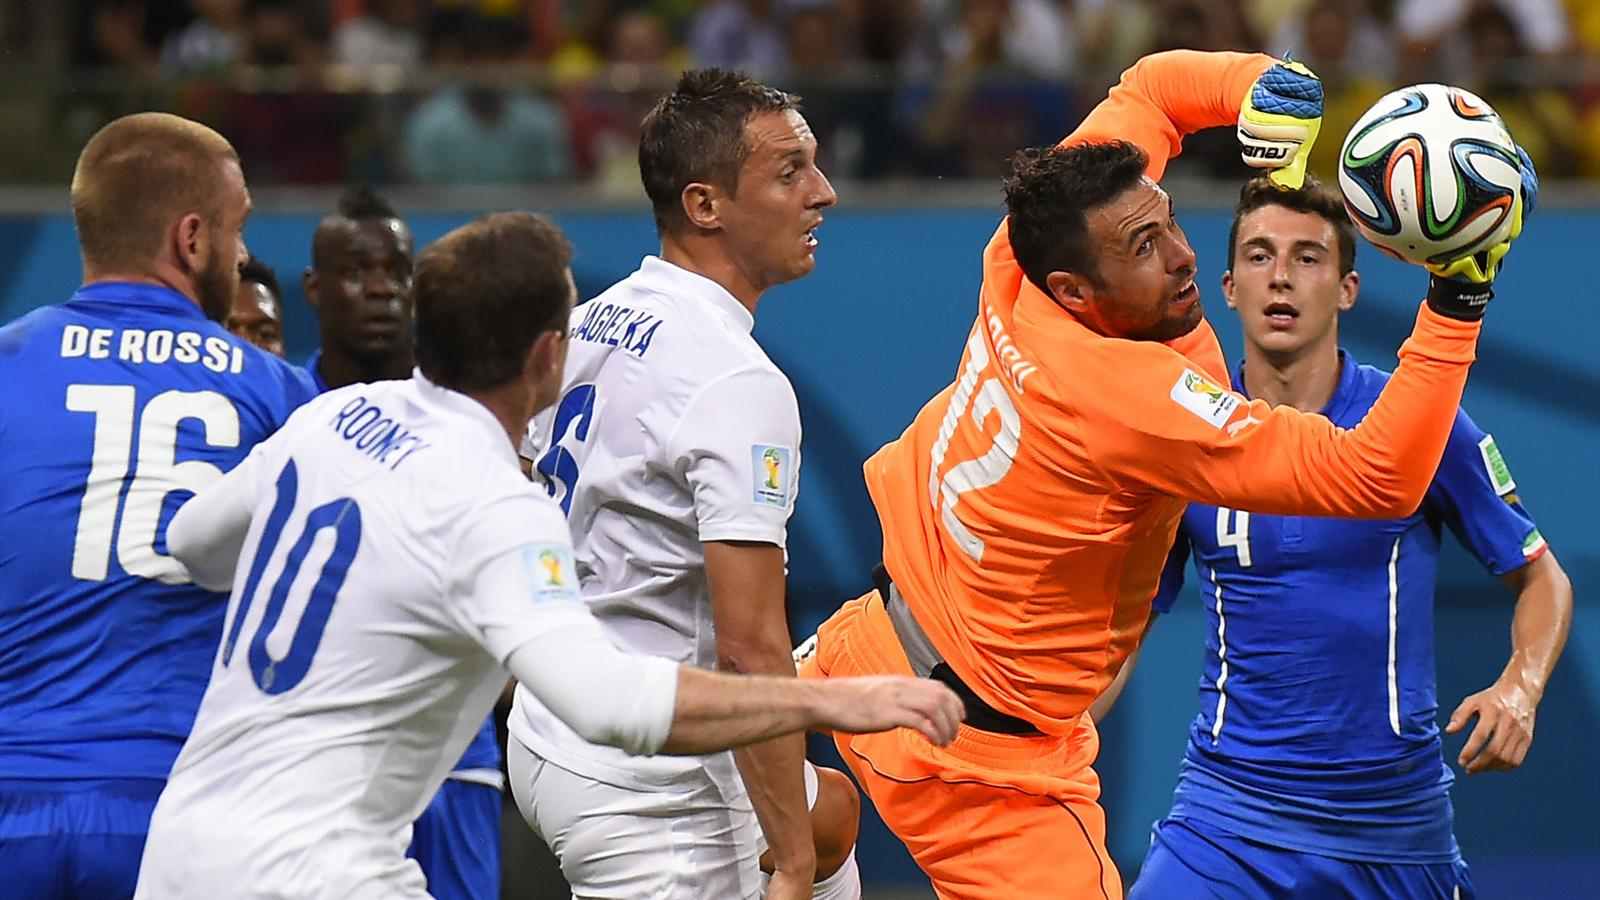 BRAZIL, Manaus : Italy's goalkeeper Salvatore Sirigu (2R) saves the ball during a Group D football match between England and Italy at the Amazonia Arena in Manaus during the 2014 FIFA World Cup on June 14, 2014. AFP PHOTO / FABRICE COFFRINI